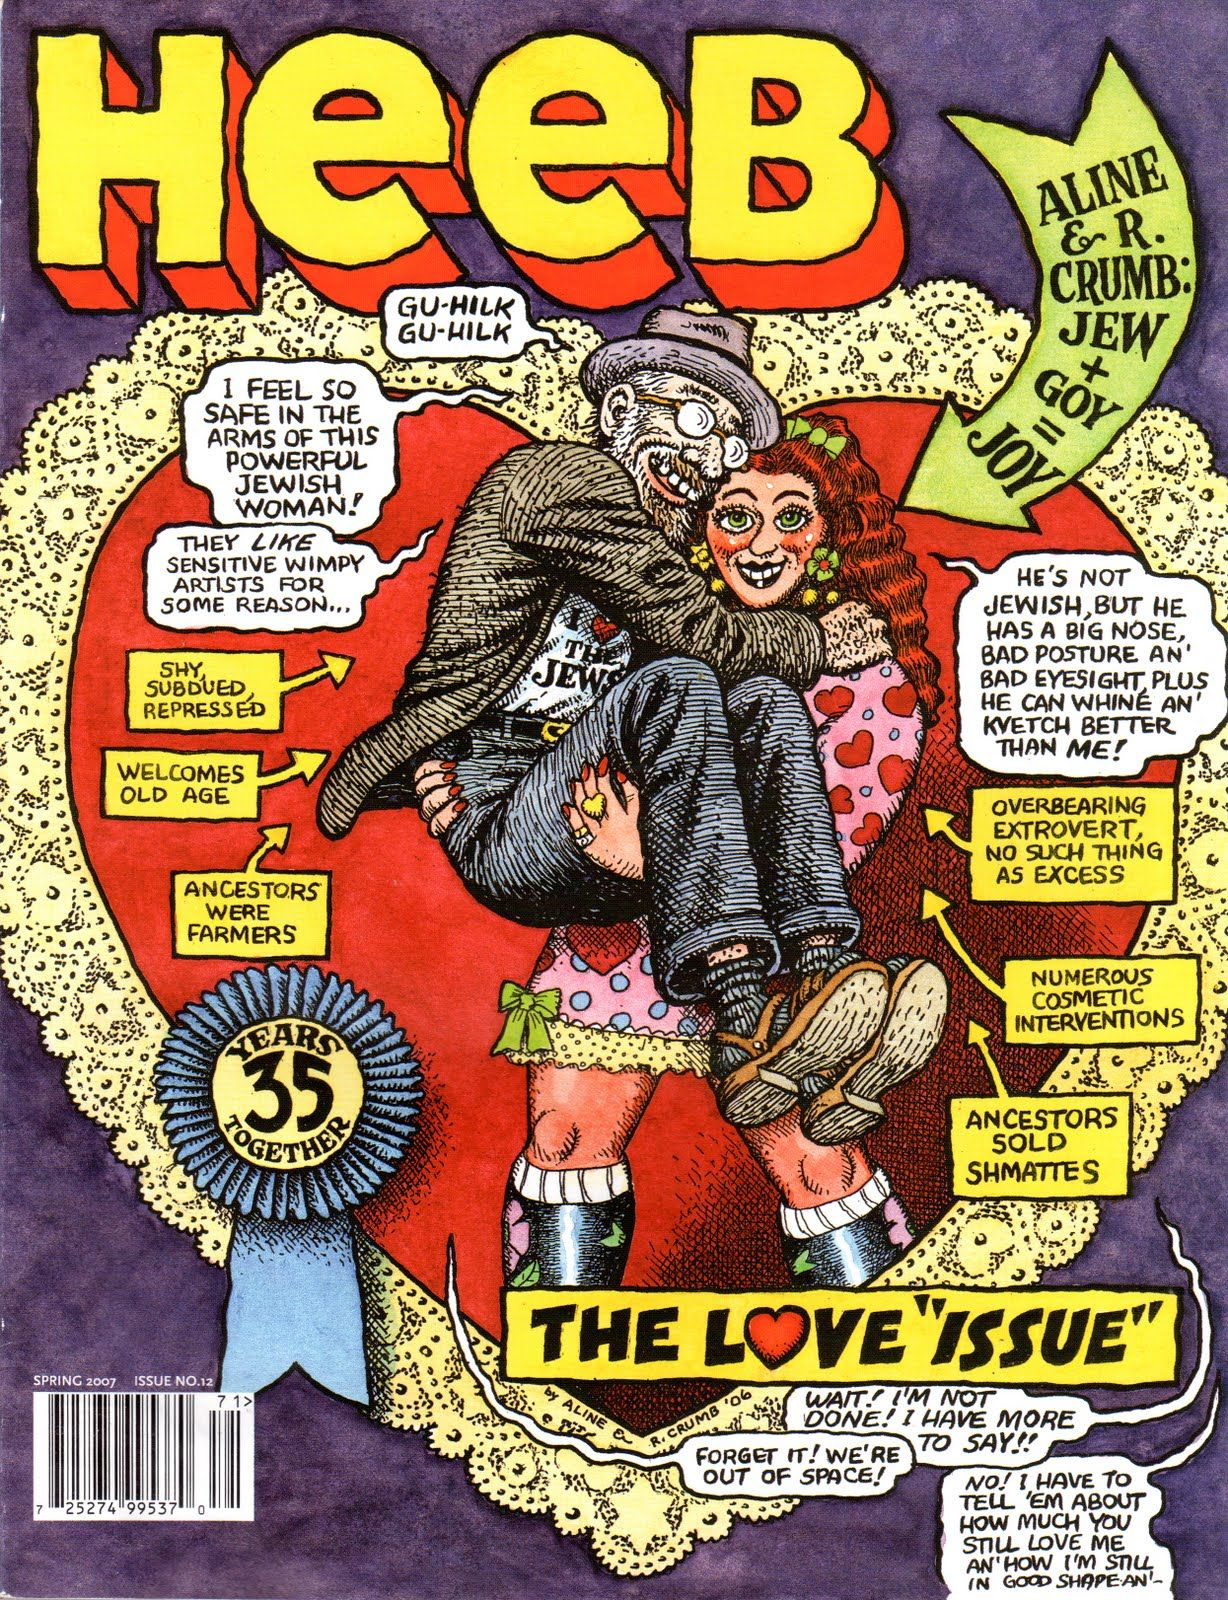 The love issue featured an original r. crumb illustration